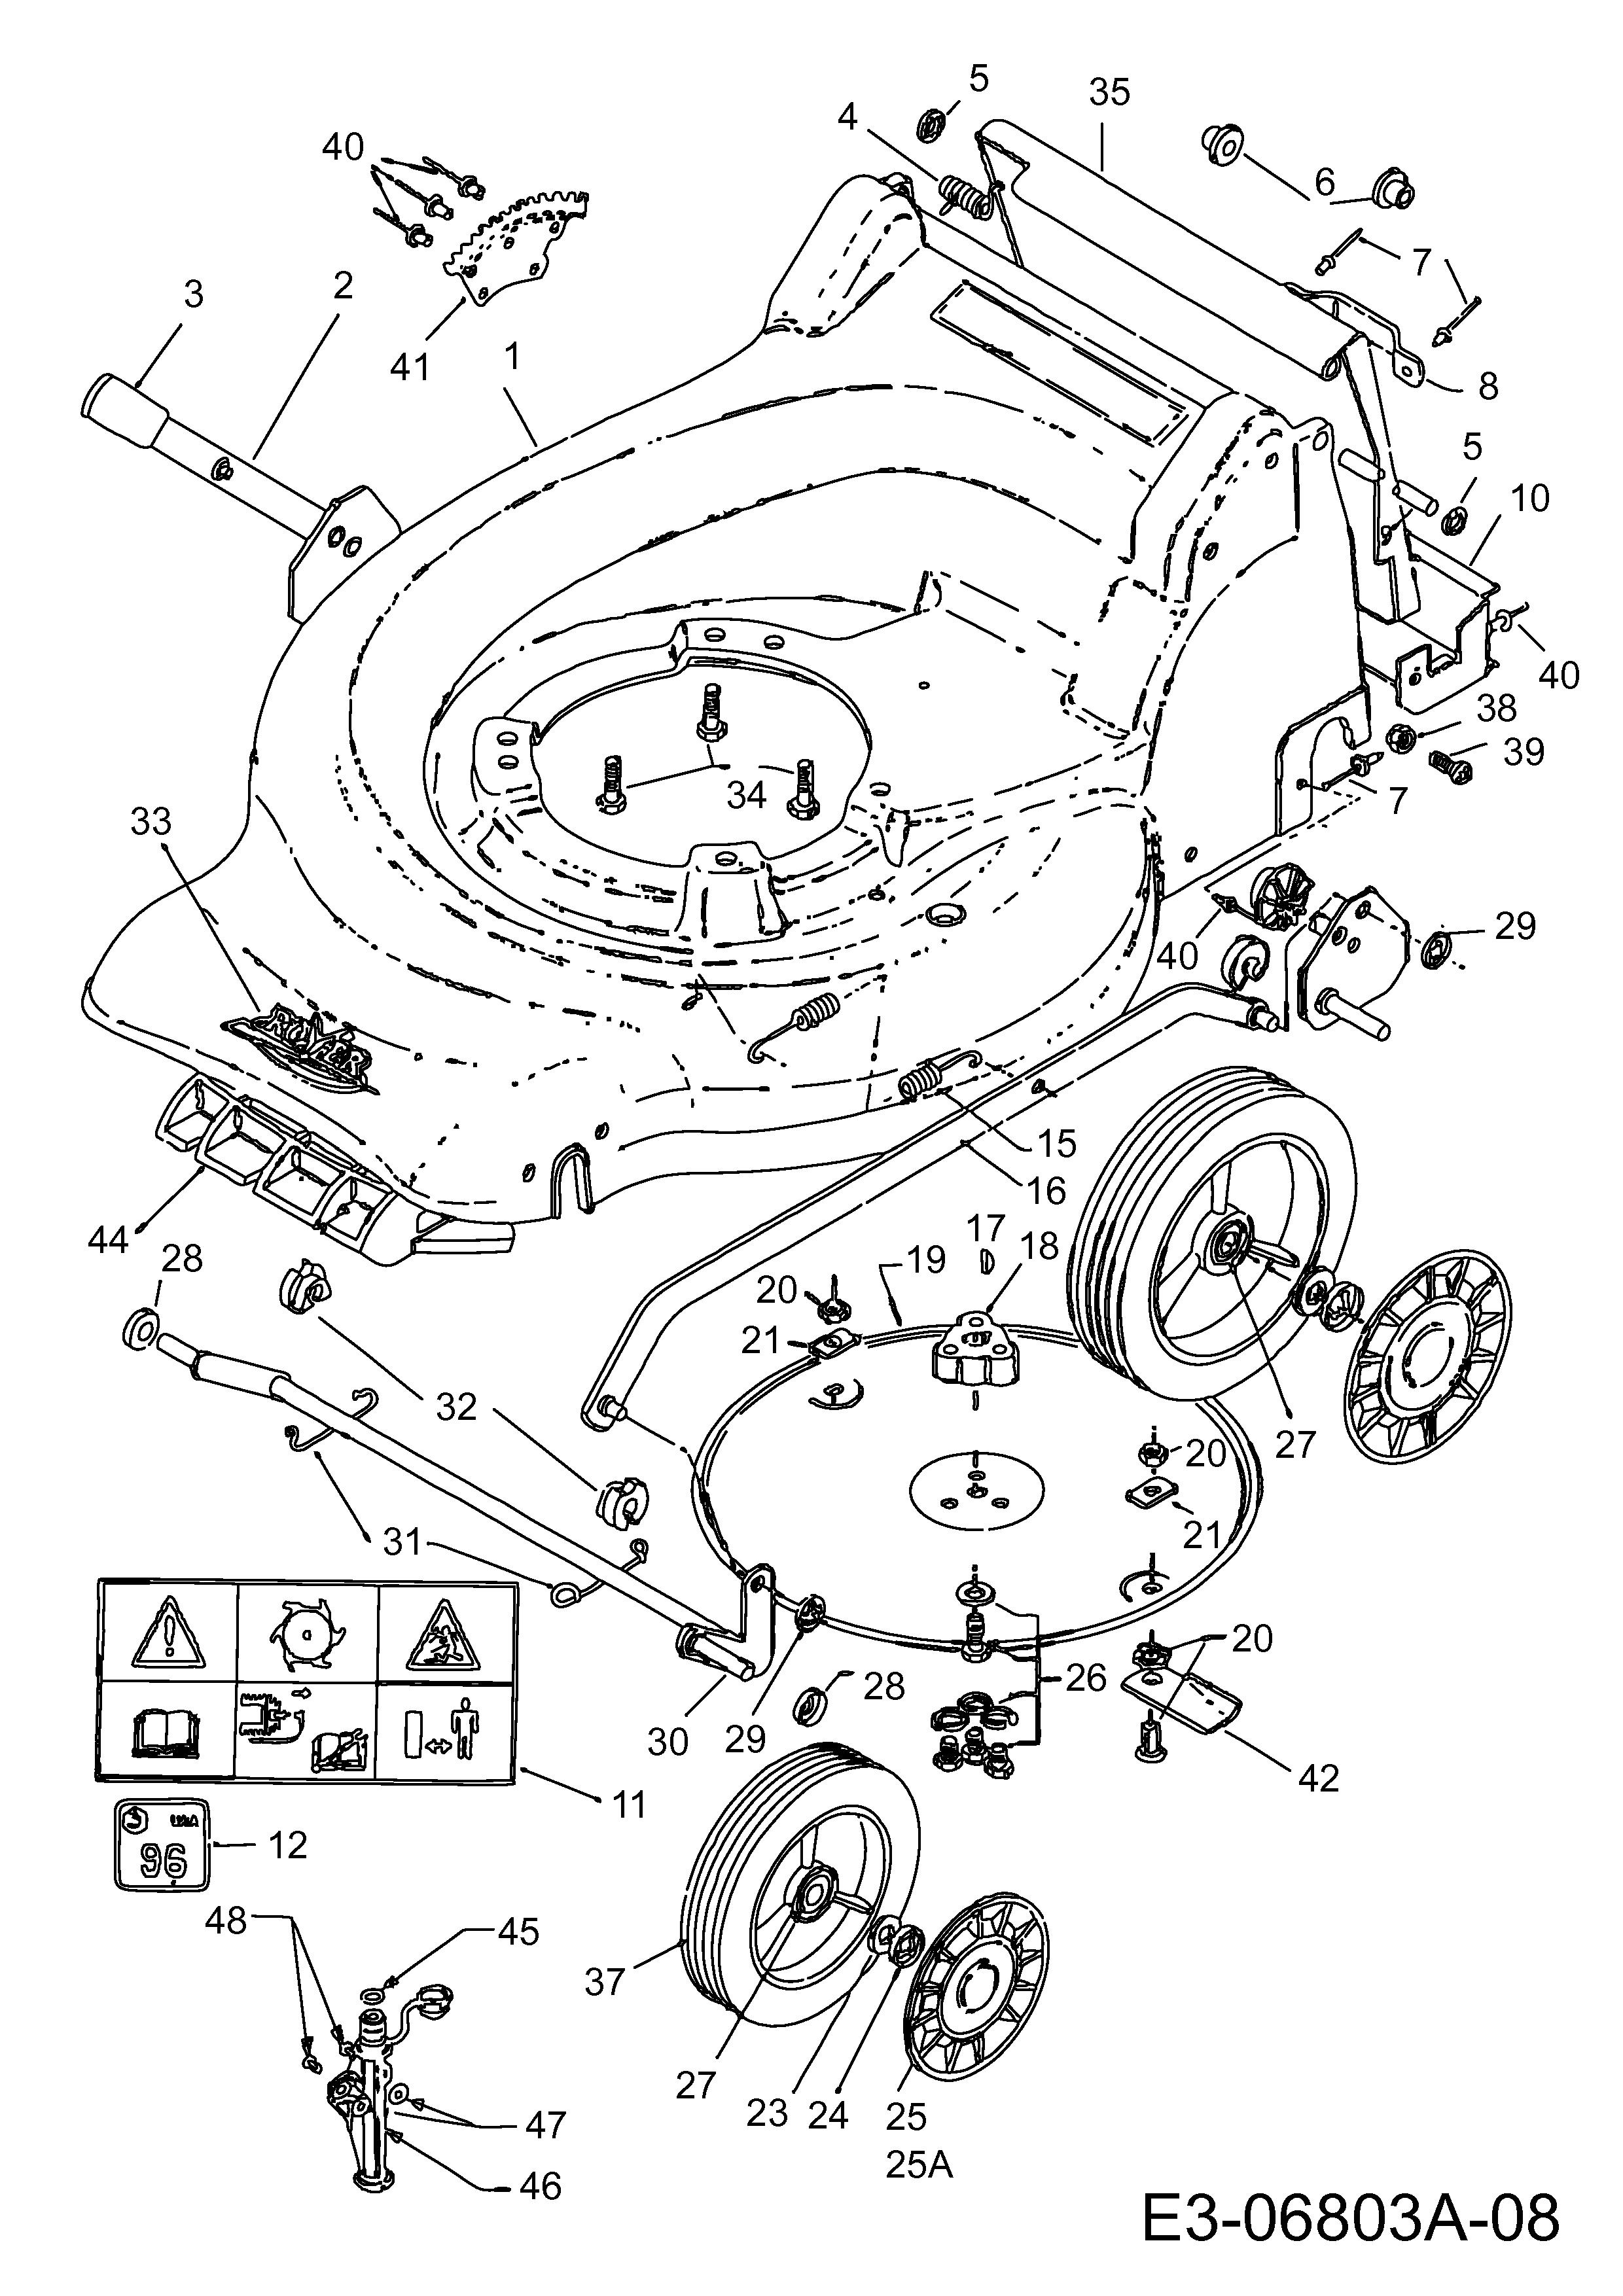 Cub Cadet Lt1045 Wiring Diagram as well Rear Wheel Drive likewise 34582 Honda Lawnmower Will Not Start additionally Wiring Diagram furthermore Tractor Coloring Pictures. on john deere mower controls